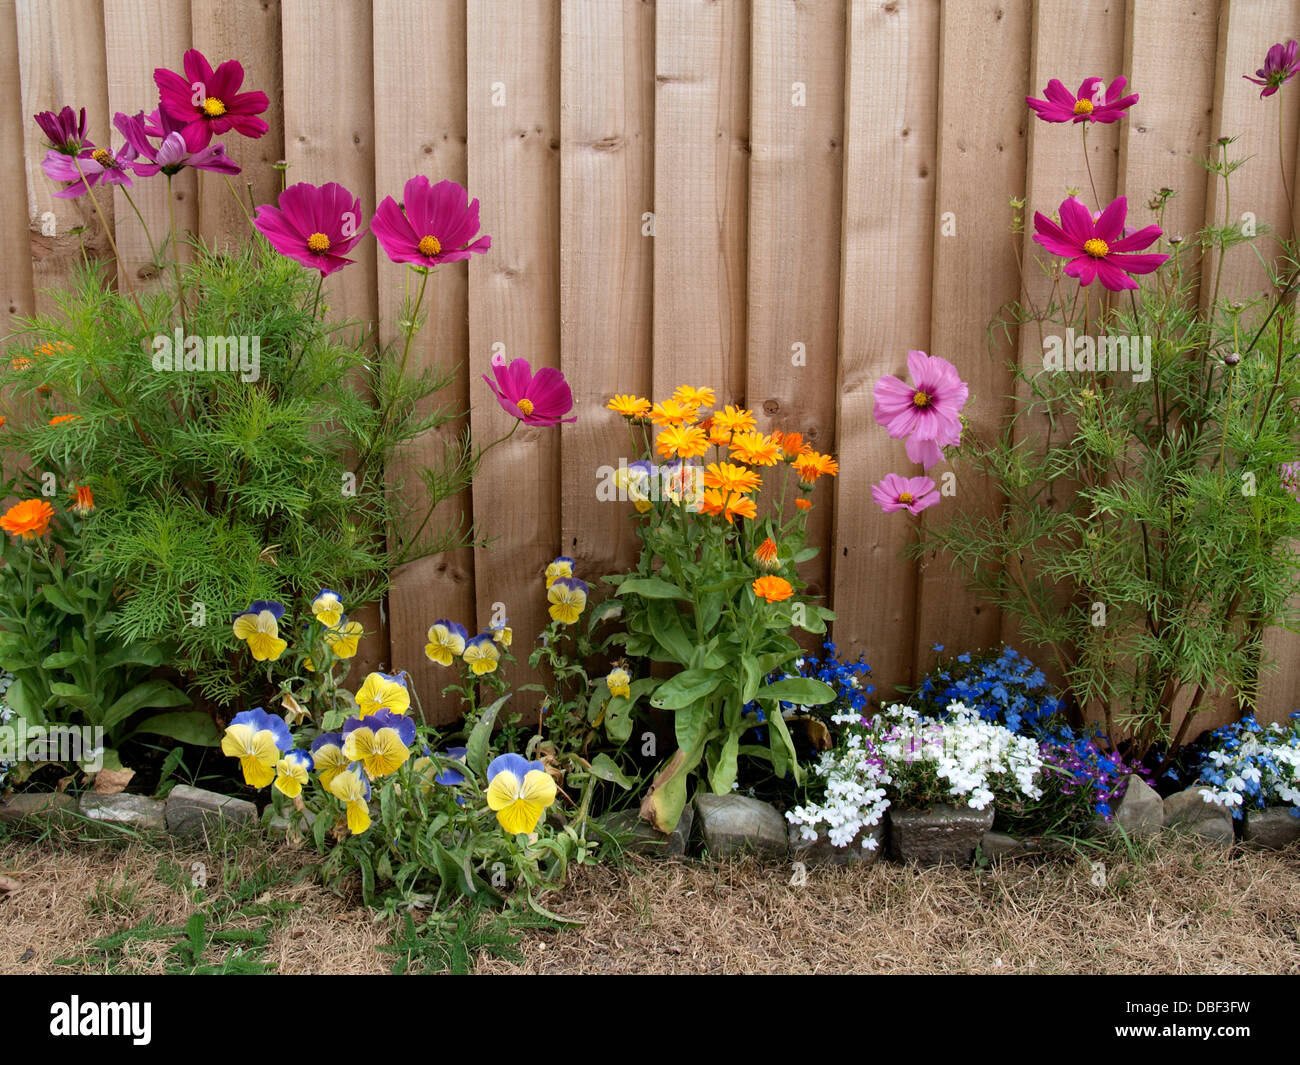 garden flowers in front of a wooden fence, uk 2013 stock photo